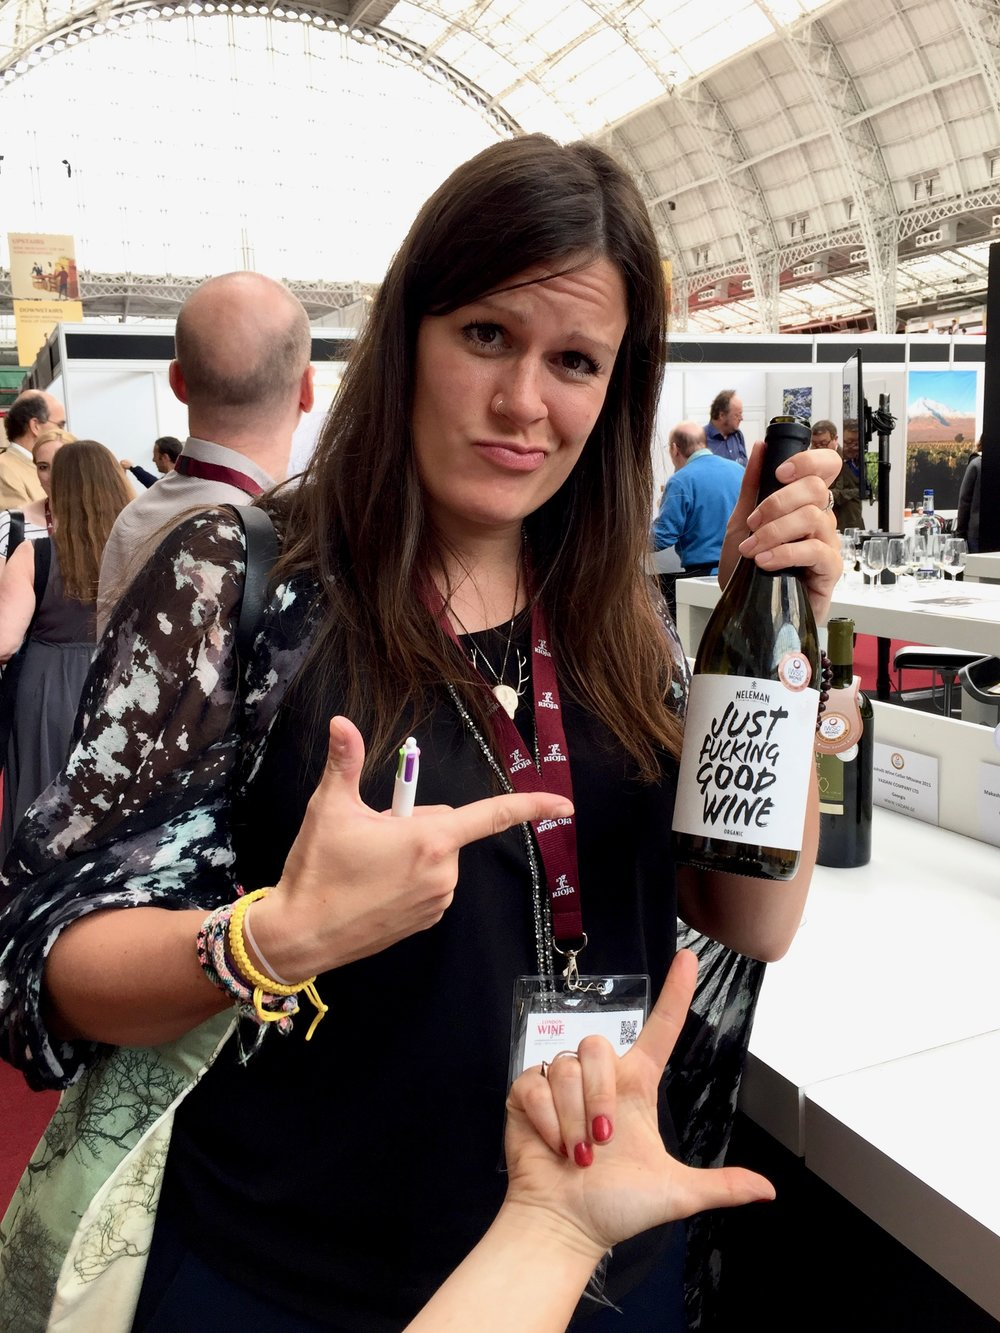 Bottle Bitches - Caro Spinette with a bottle of Just Fucking Good Wine at London Wine Fair 2017.jpg